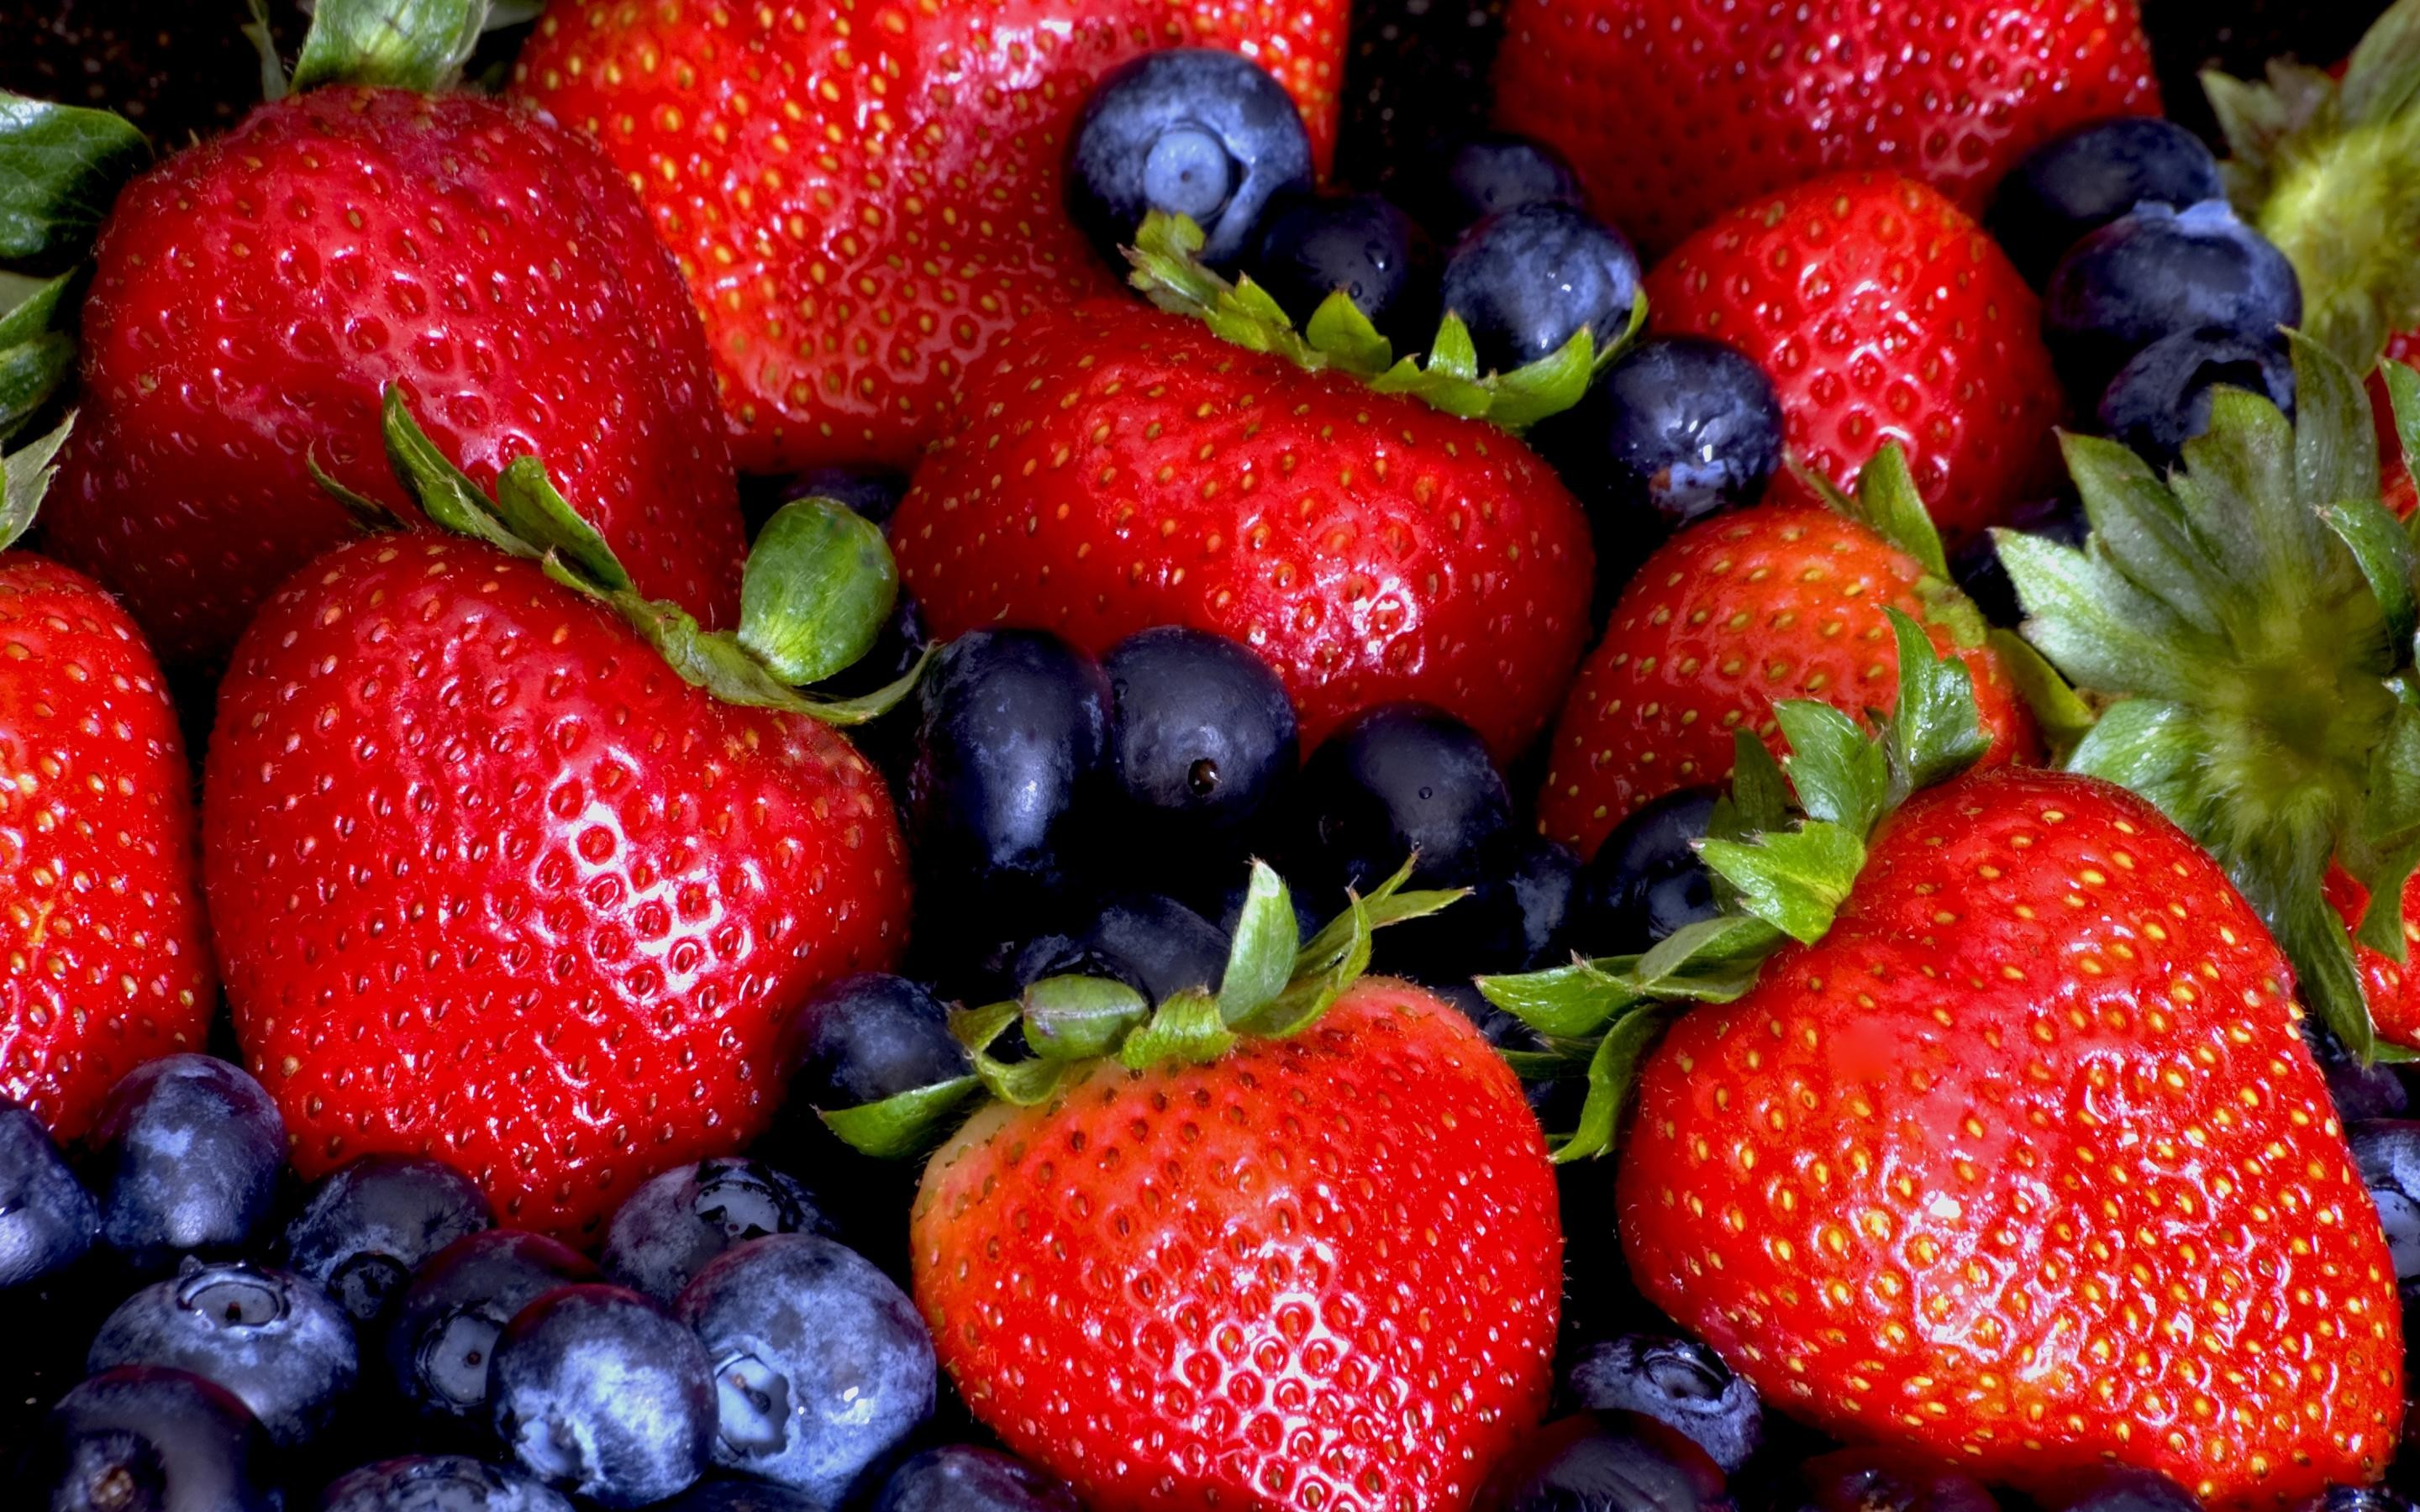 2880x1800 Strawberries, And, Blueberrieshd, Background, Wallpaper, Pictures, Free,  For, Desktop, Background, Hd Images, High Resolution Photos, Display, ...